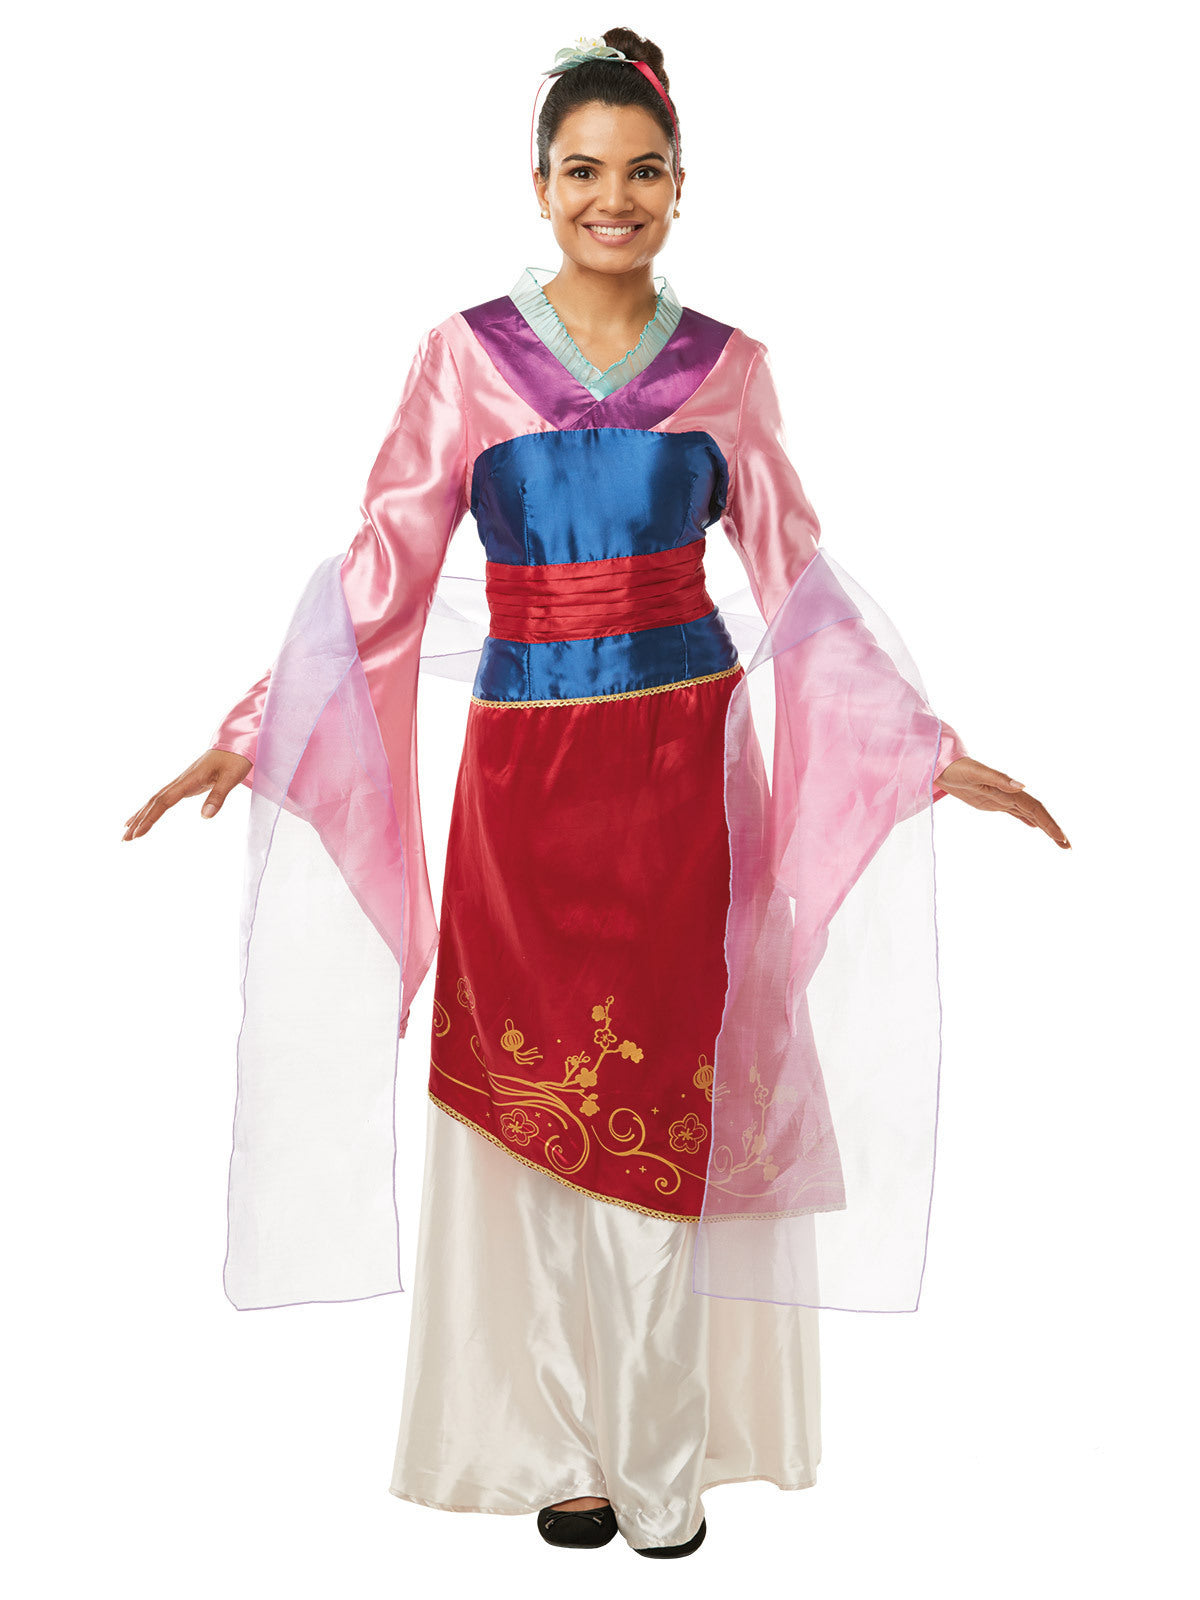 Mulan Deluxe Costume - Buy Online Only